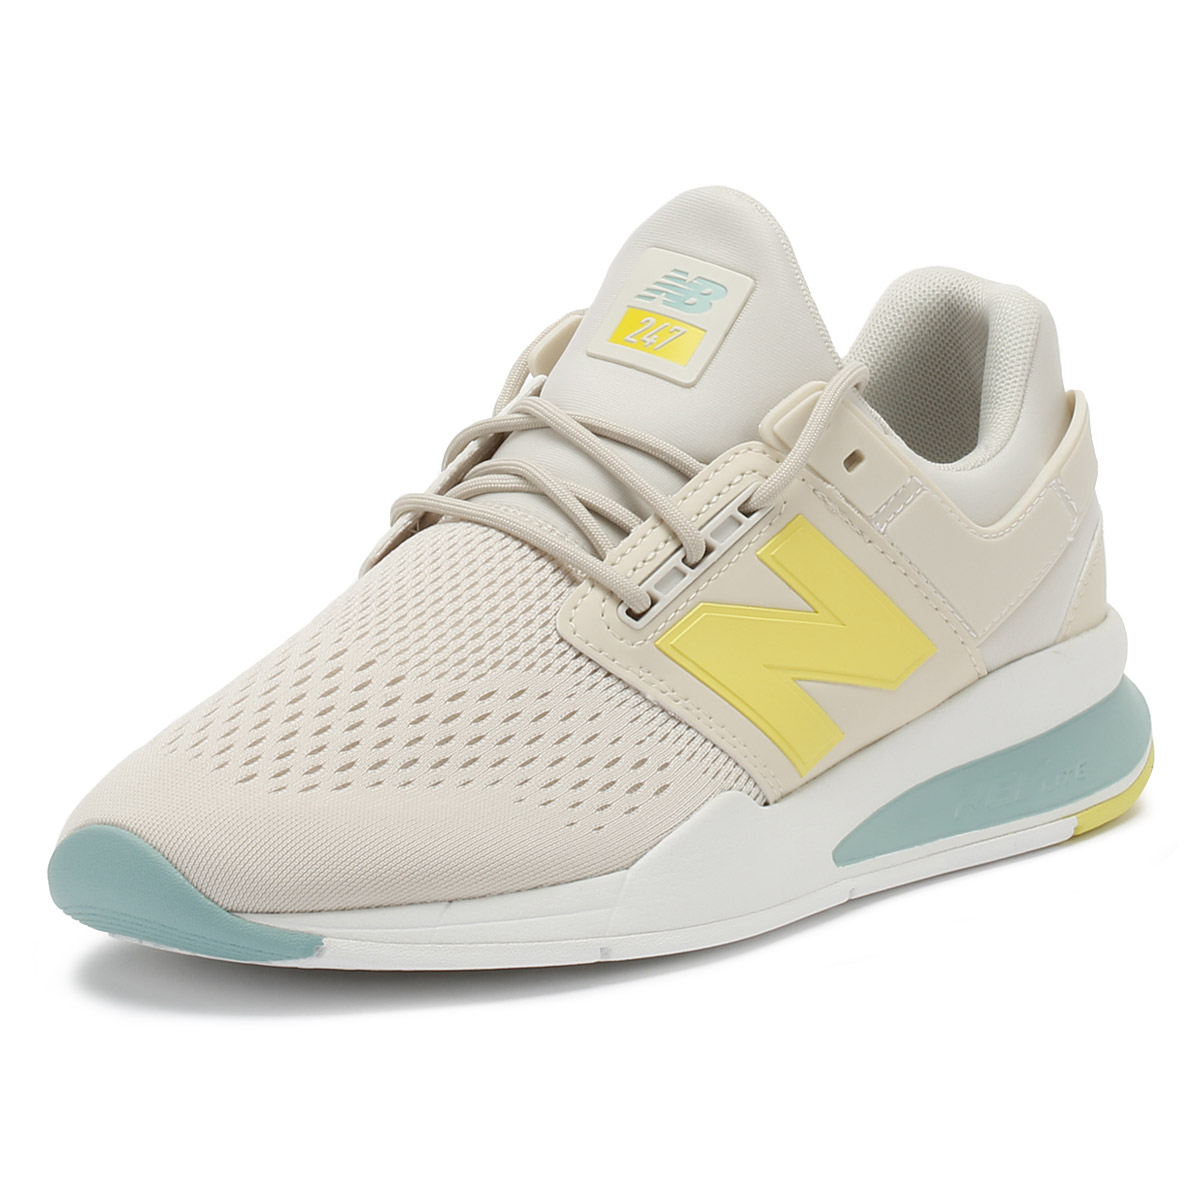 New Mineral Balance Damenschuhe Trainers Moonbeam Weiß  Mineral New Sage 247 Sport Casual Schuhes d1e041